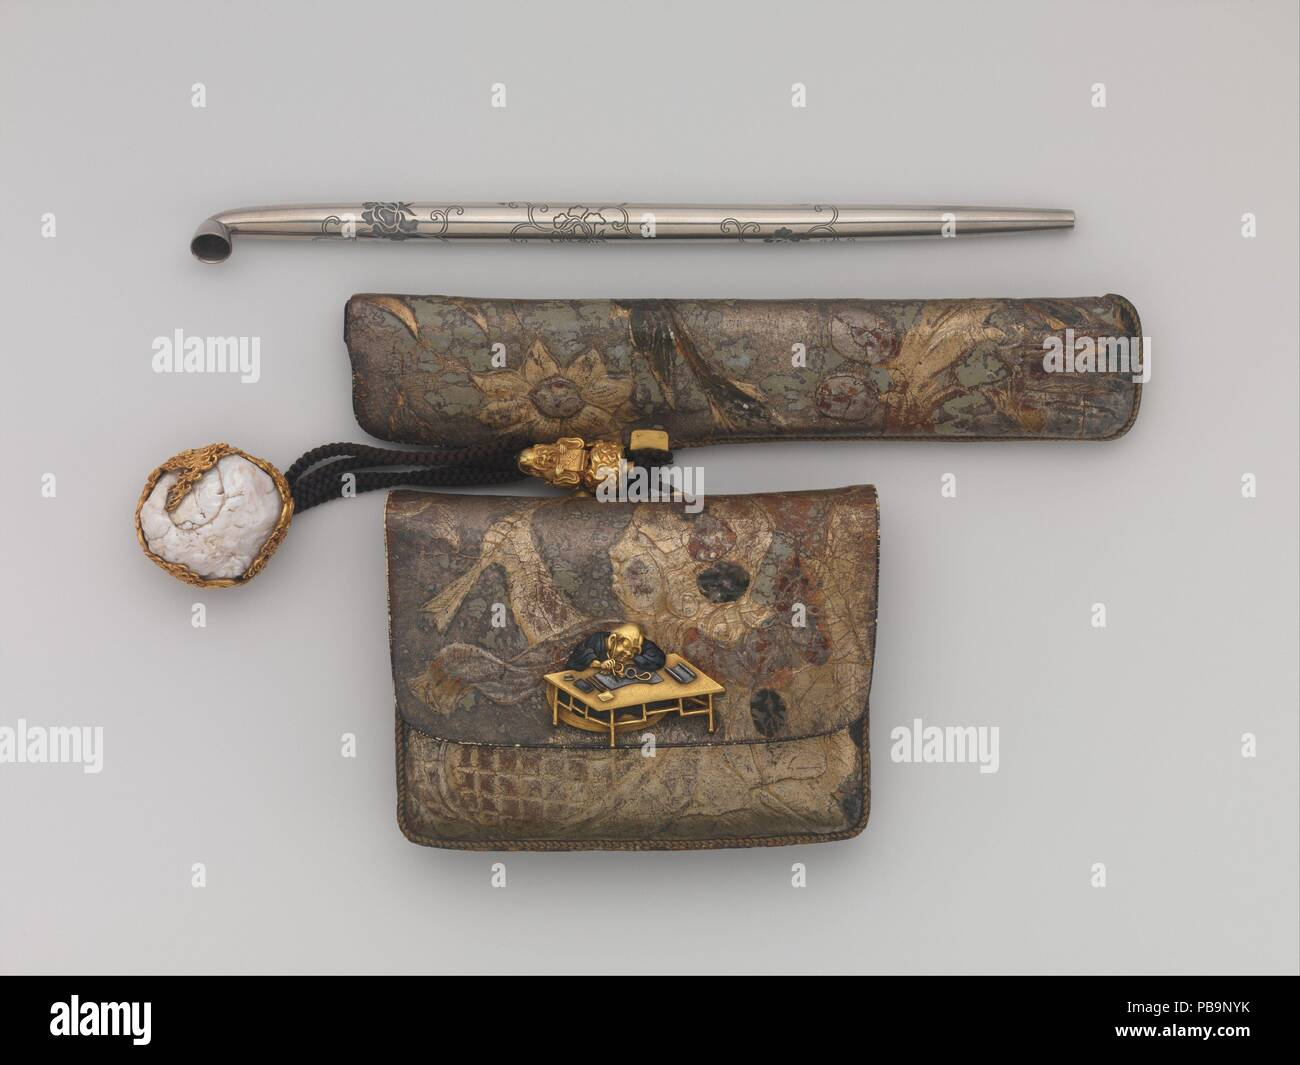 Tobacco Pouch and Pipe with Netsuke of Freshwater Pearl in